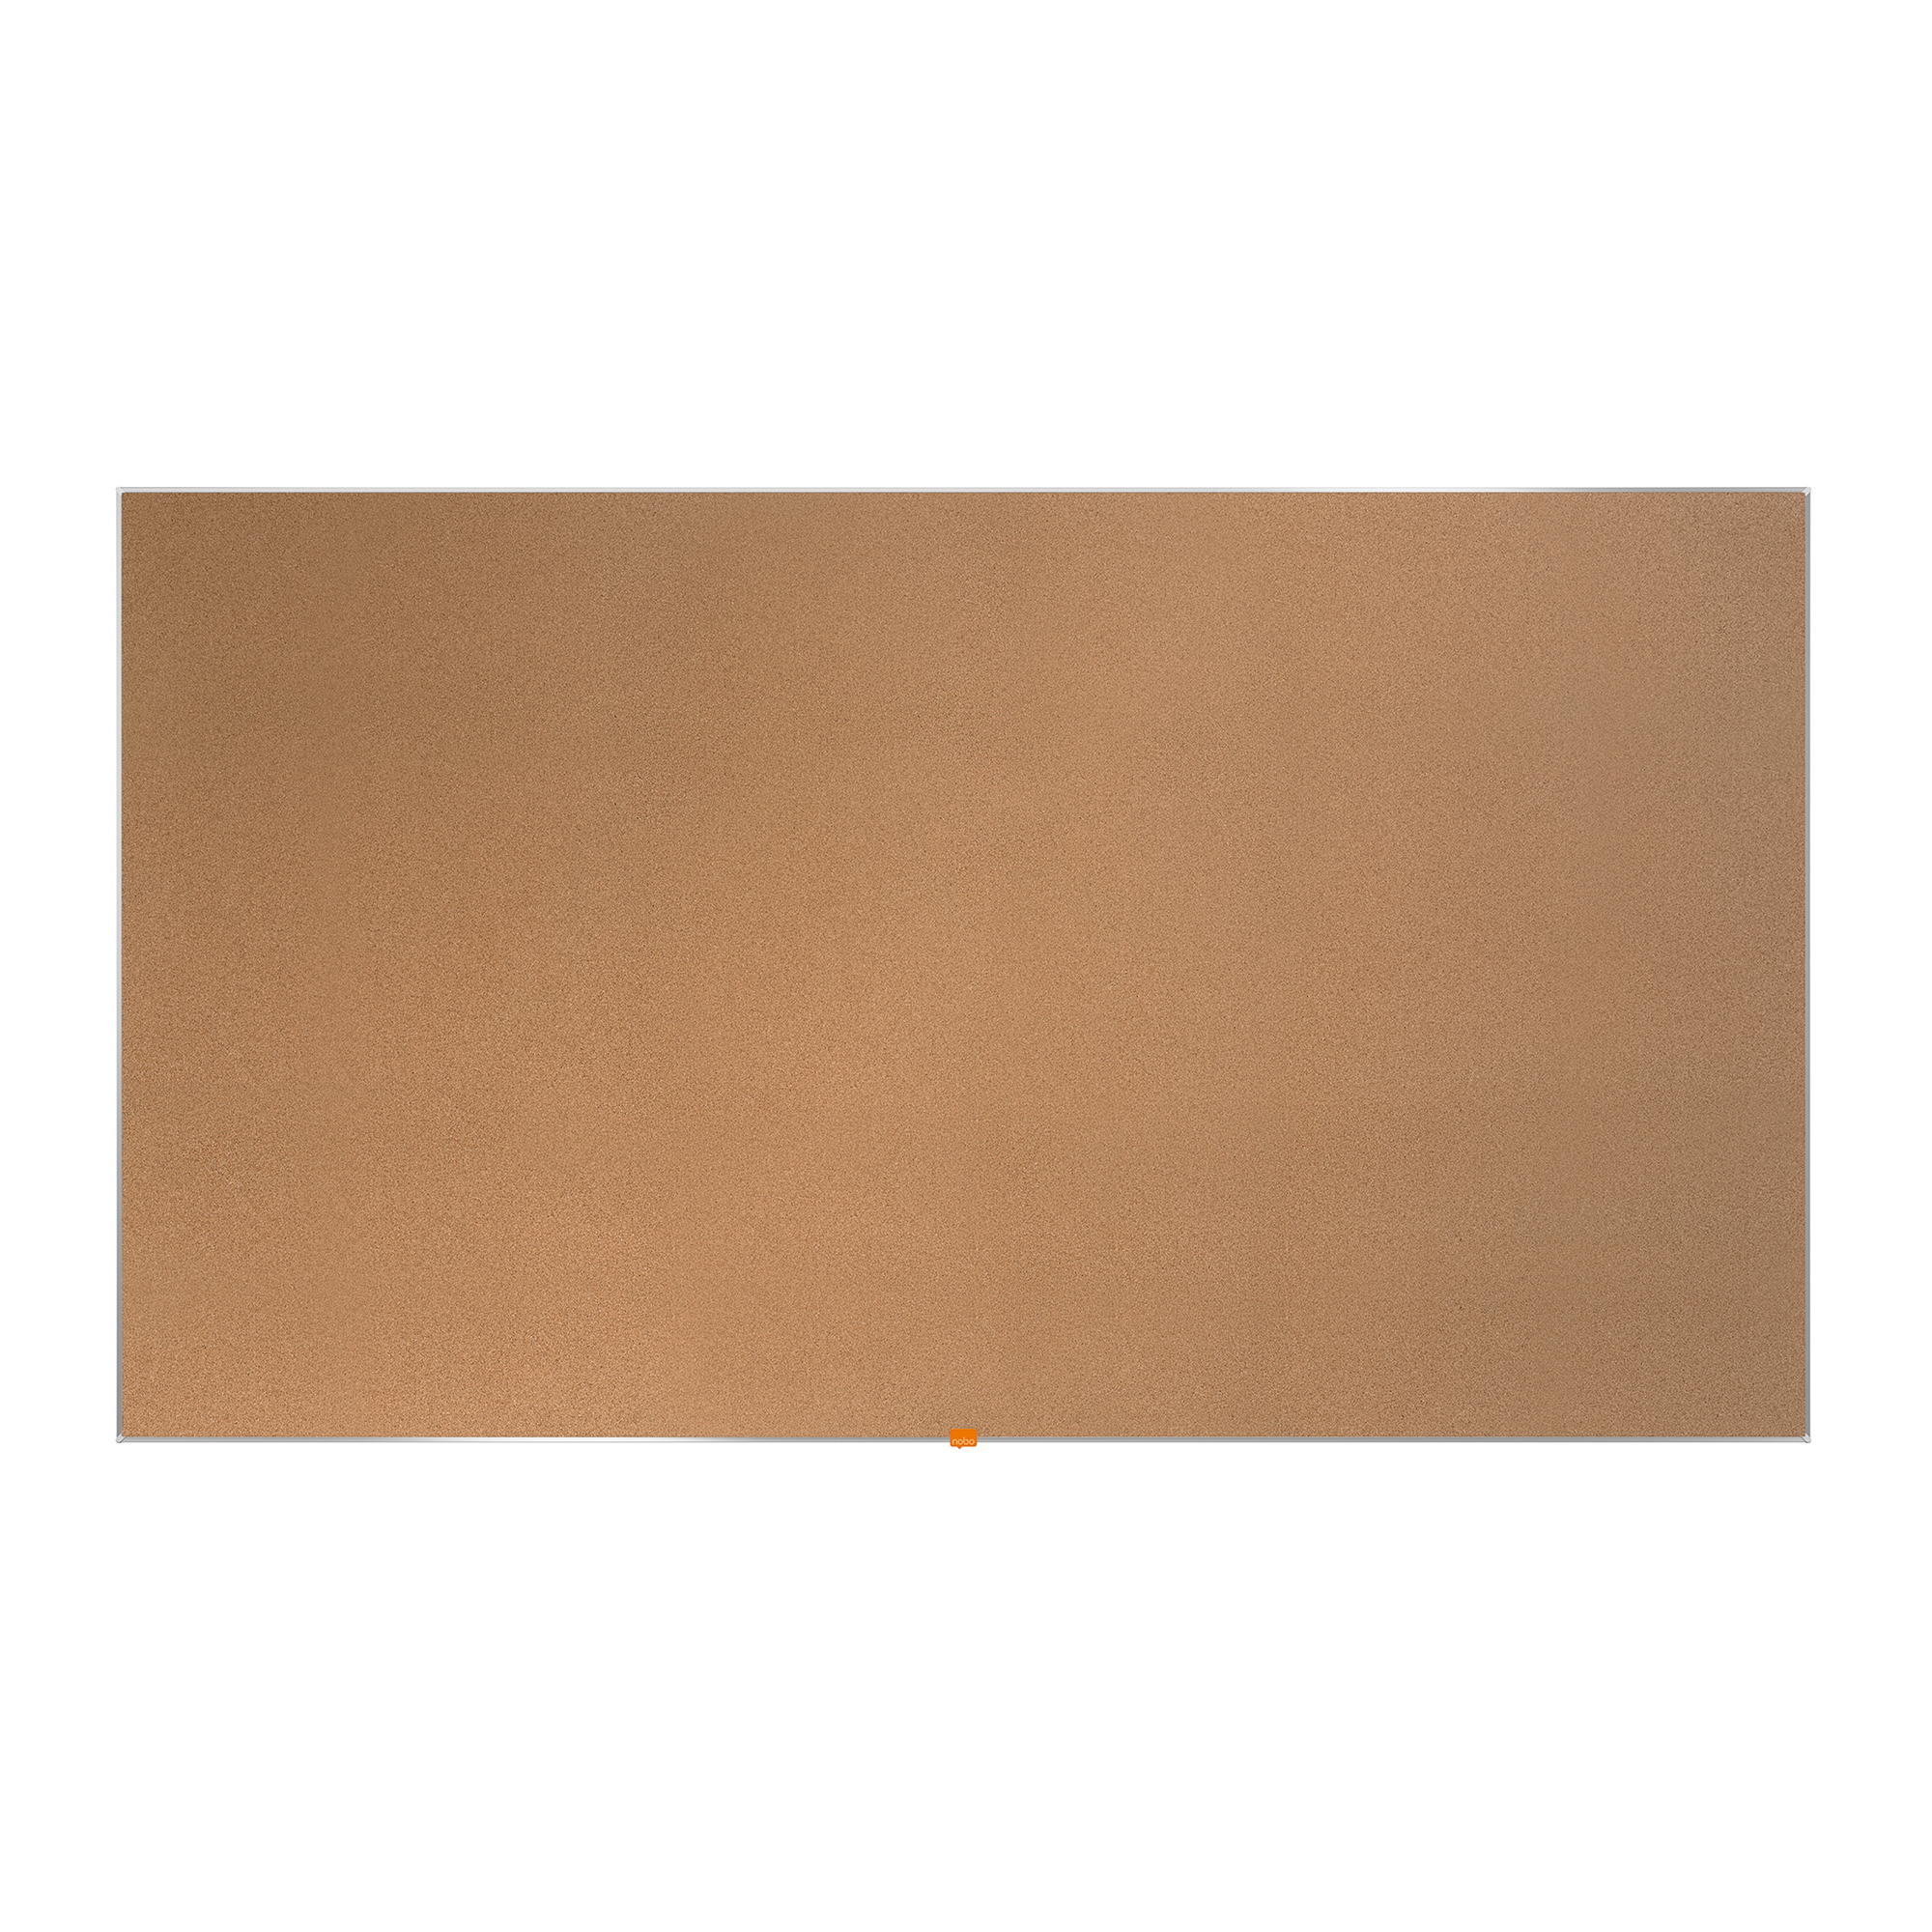 Bulletin boards or accessories Nobo 32 inch Widescreen Cork Notice Board 710x400mm Ref 1905306